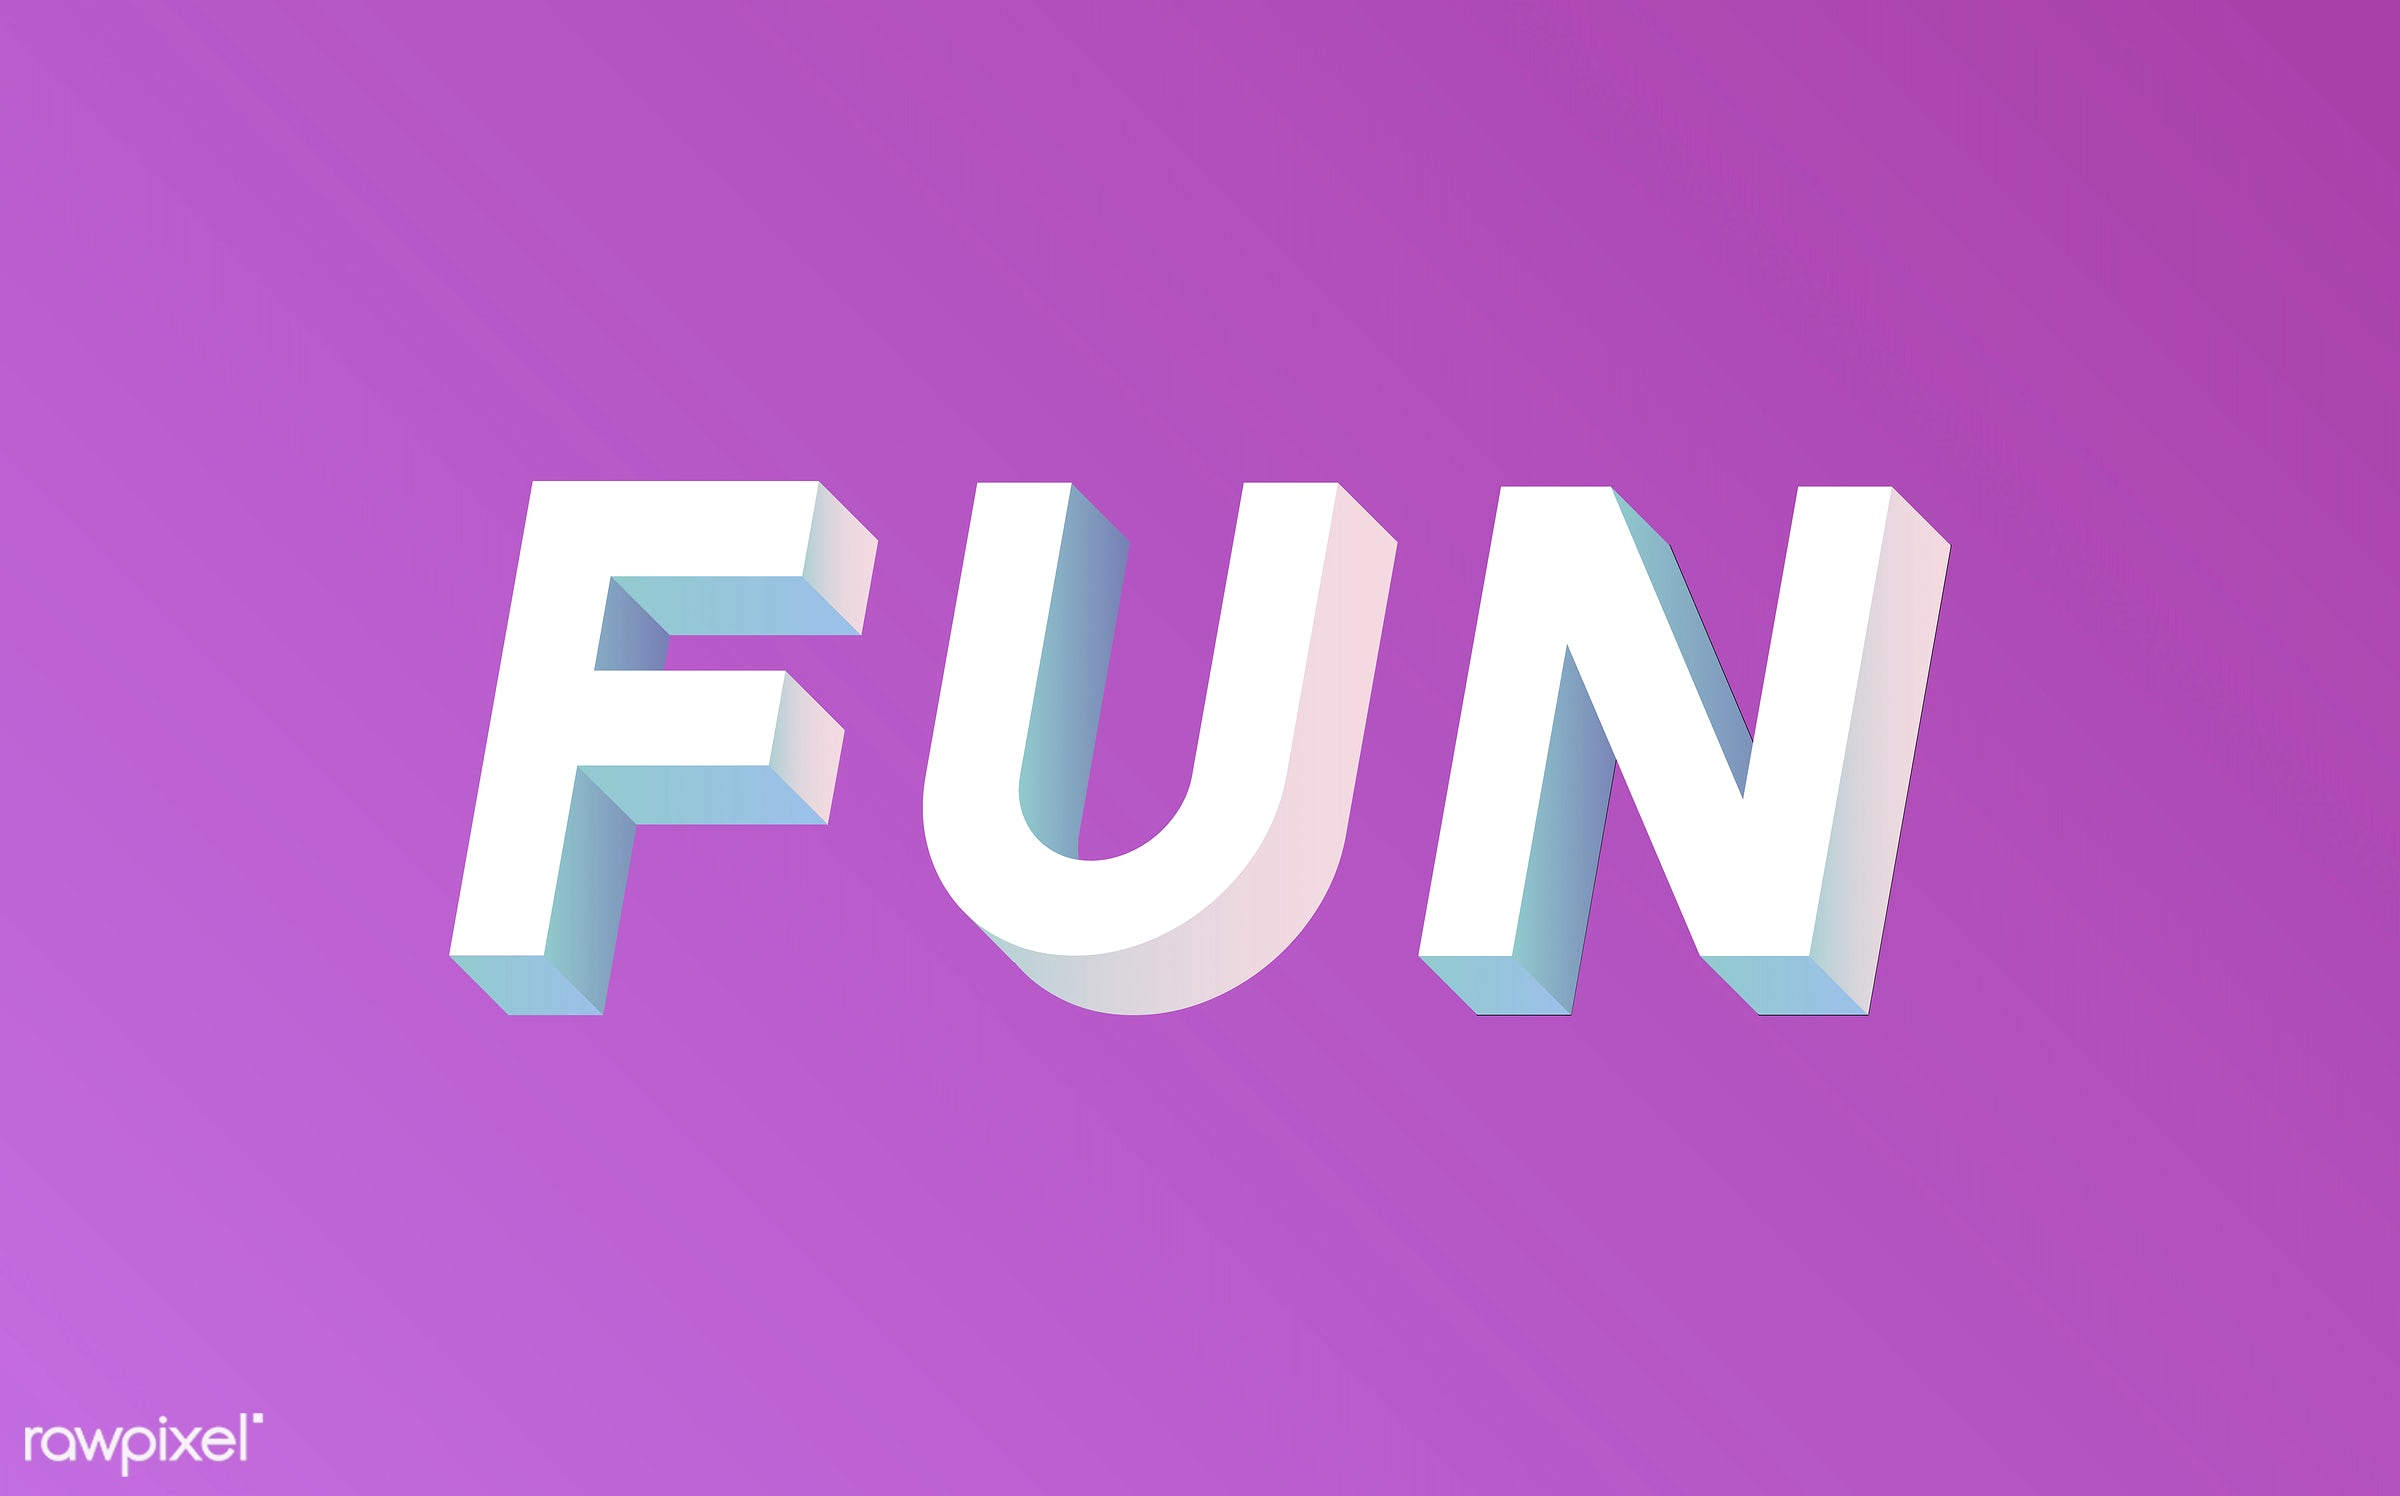 neon, colorful, 3d, three dimensional, vector, illustration, graphic, word, pink, white, fun, funny